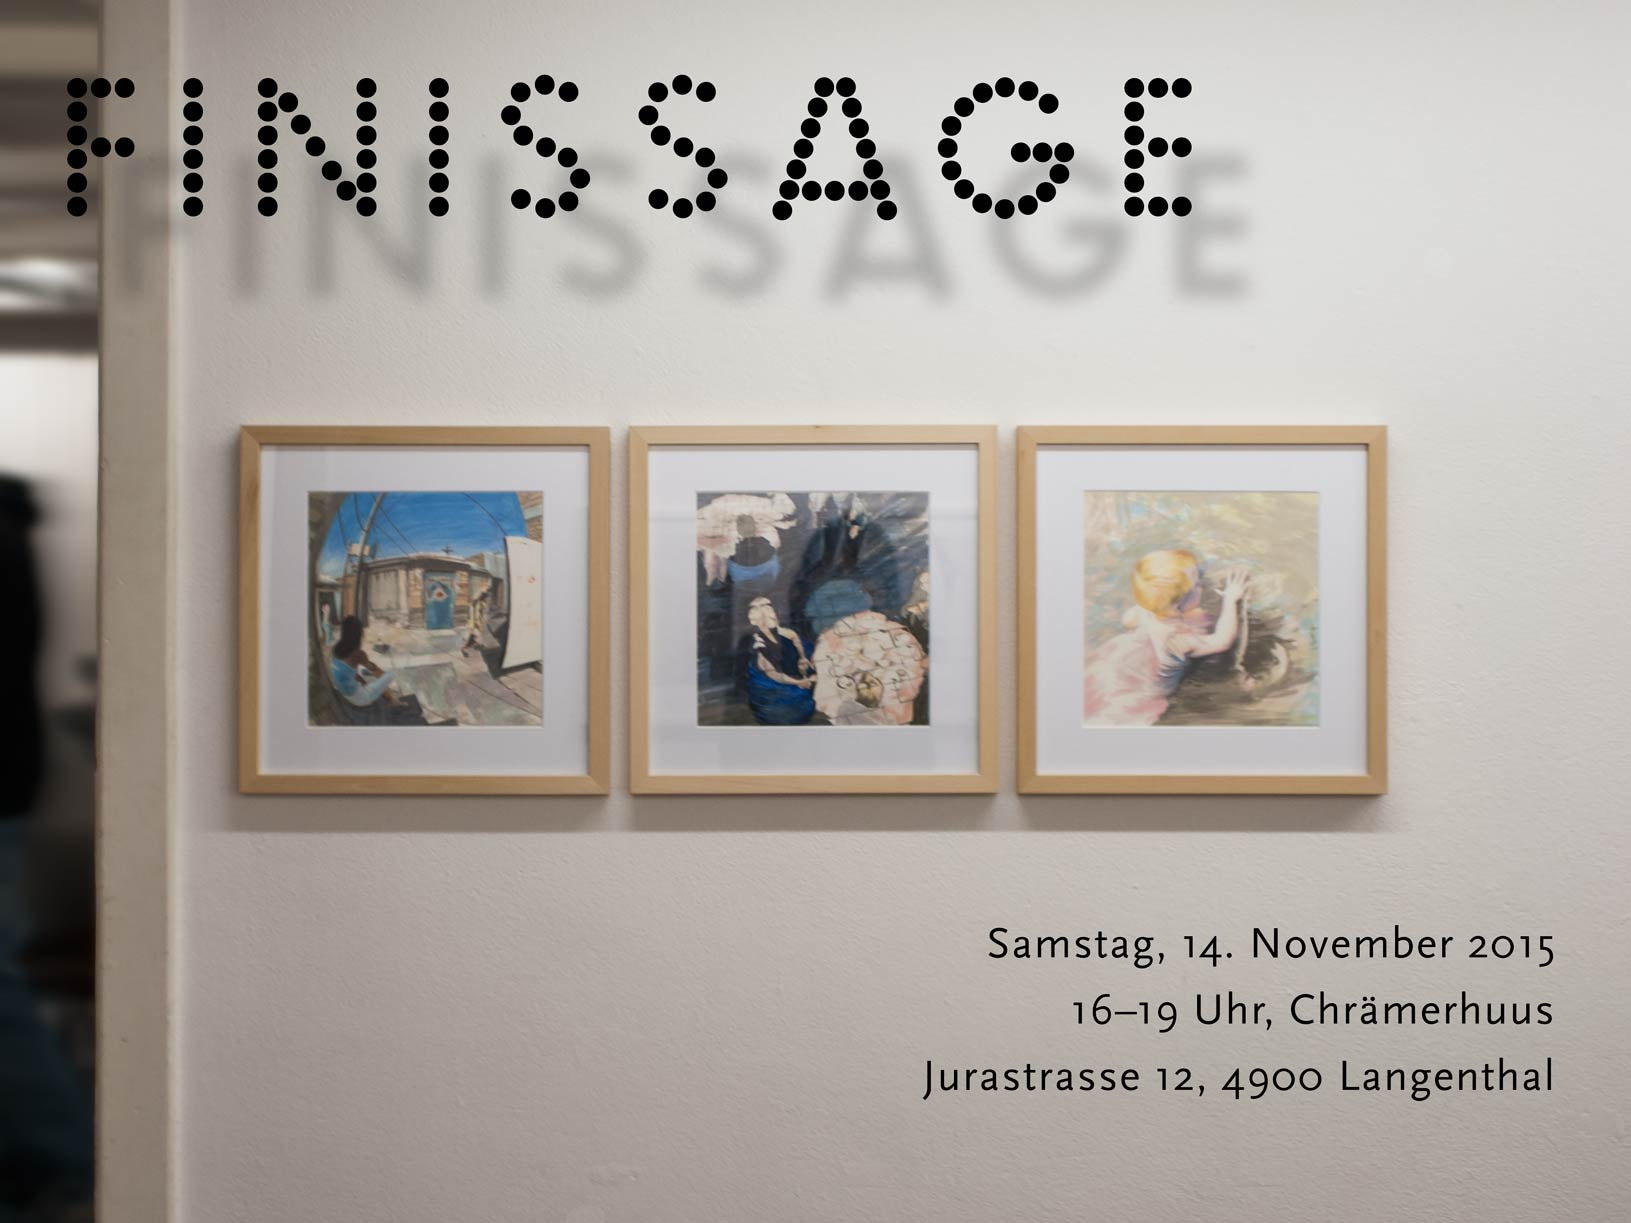 Graphic Finissage Invitation